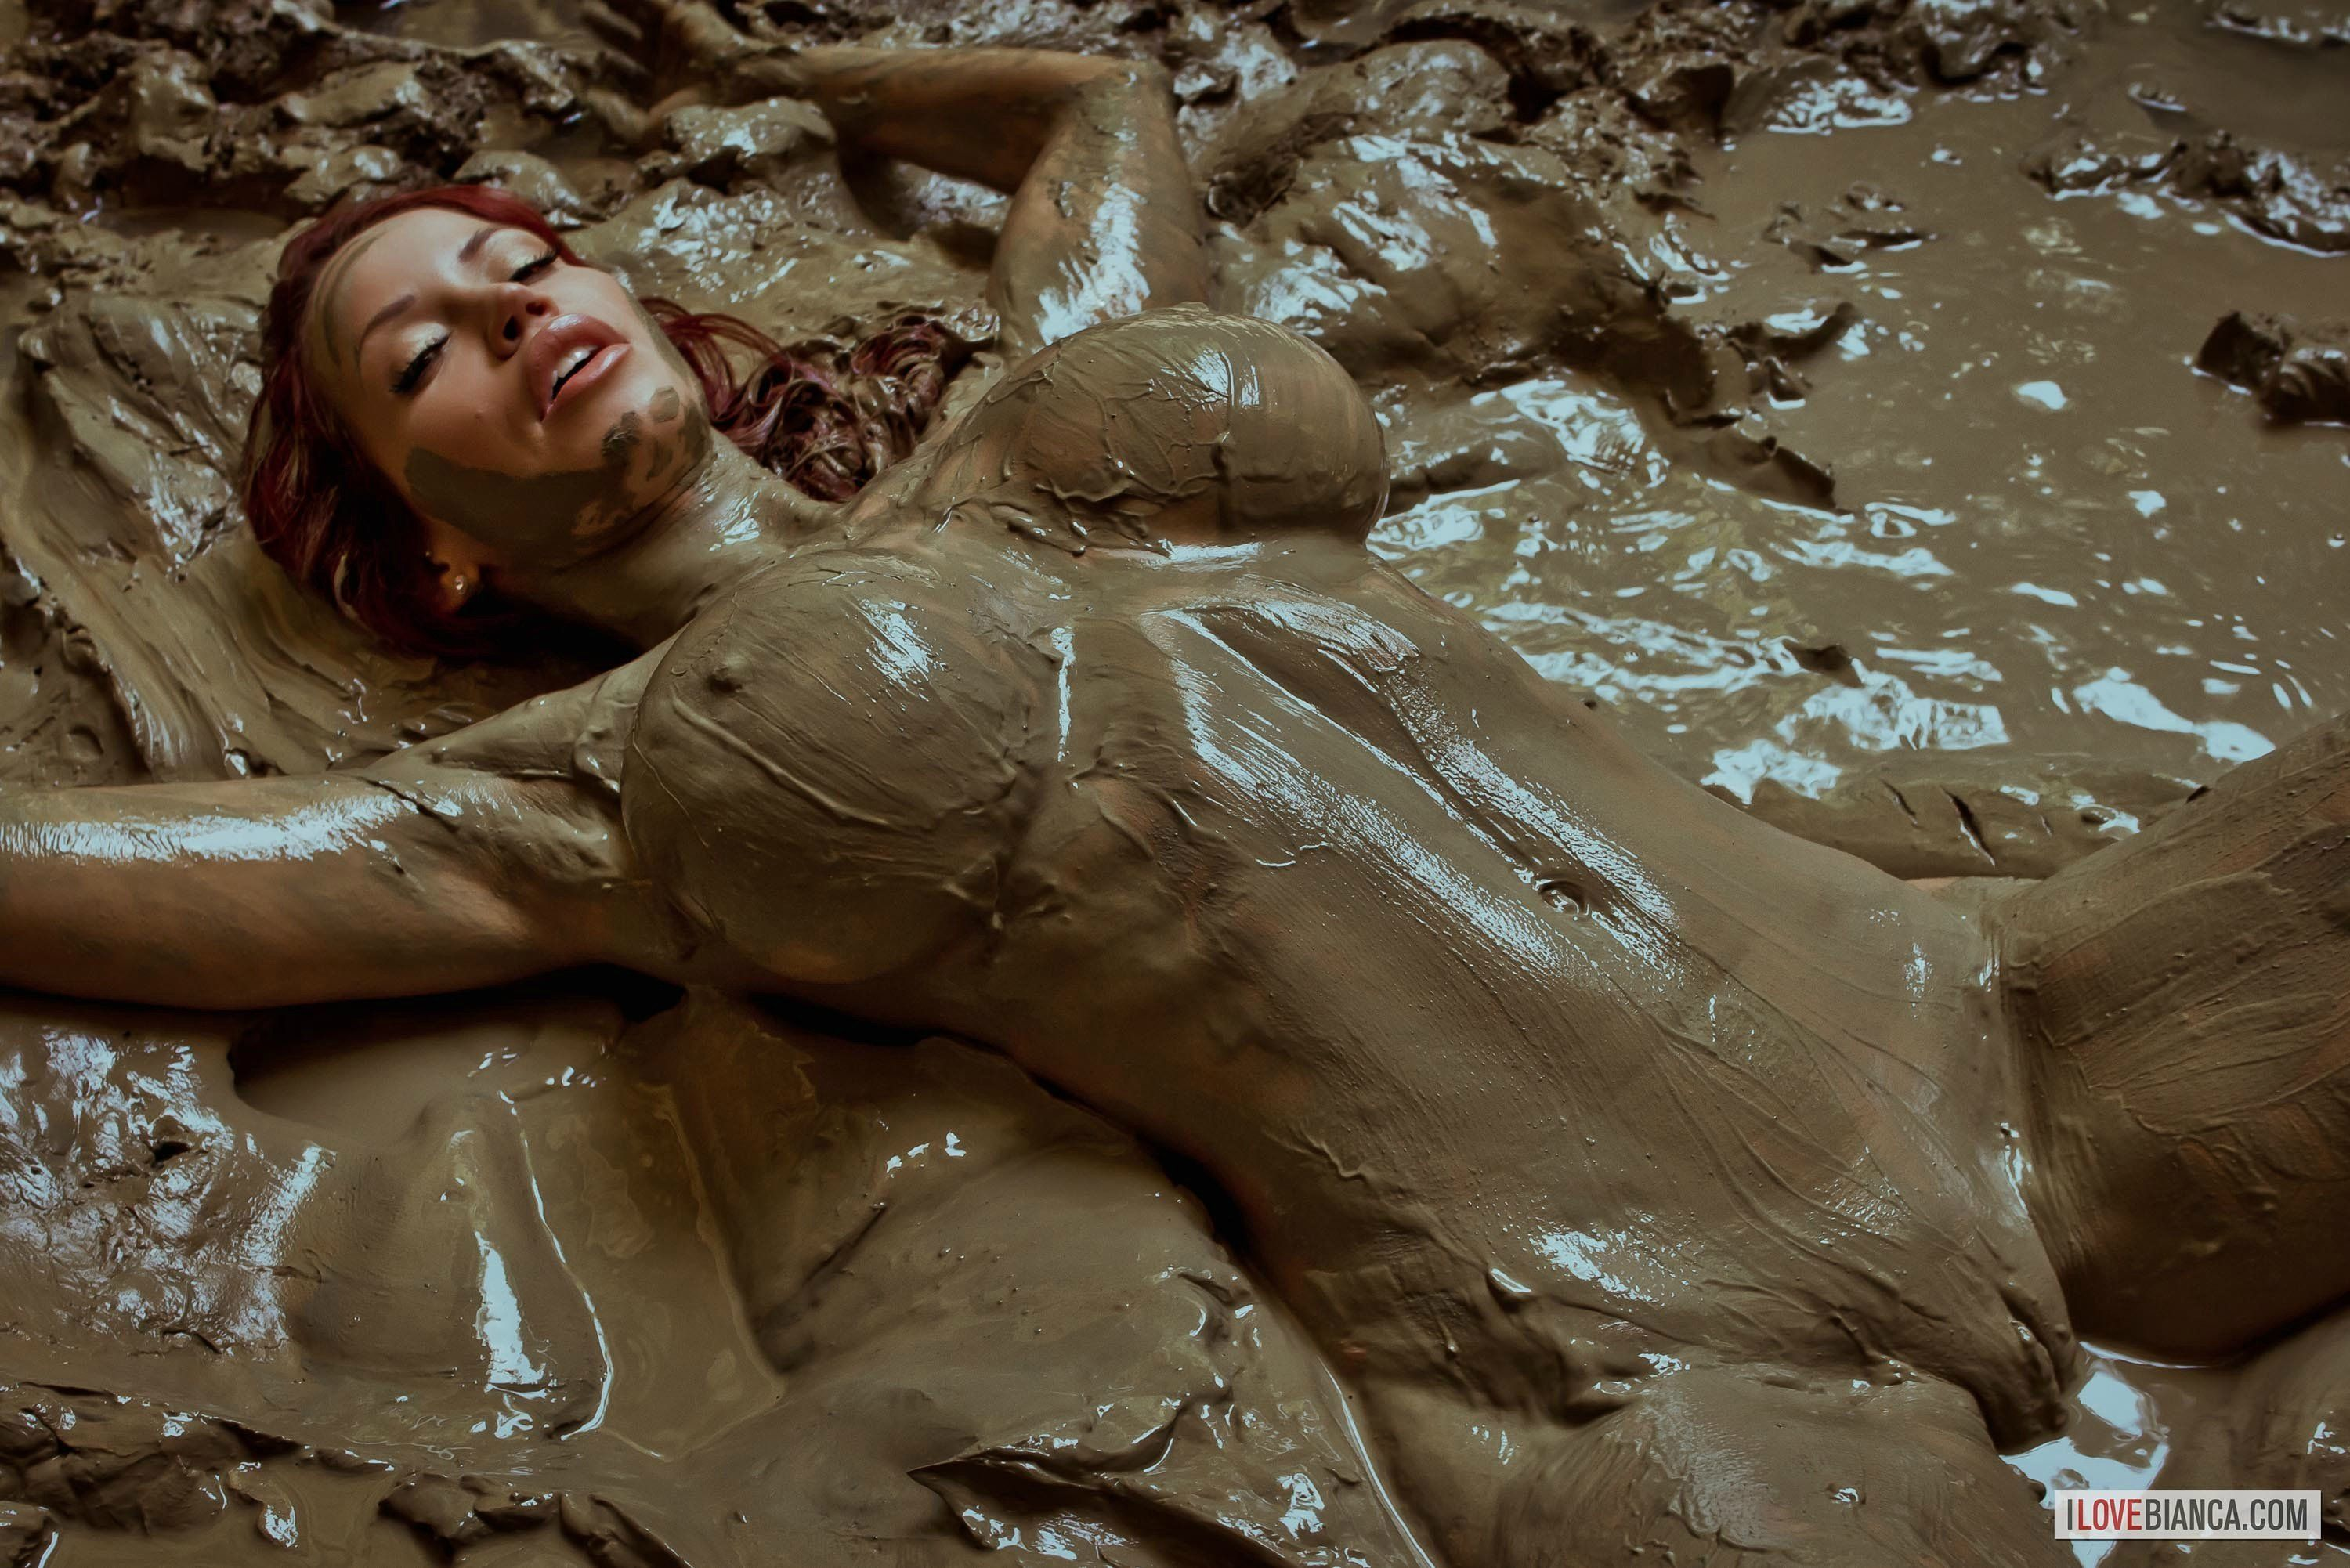 Labour. Bravo, naked pleasure in mud for that interfere